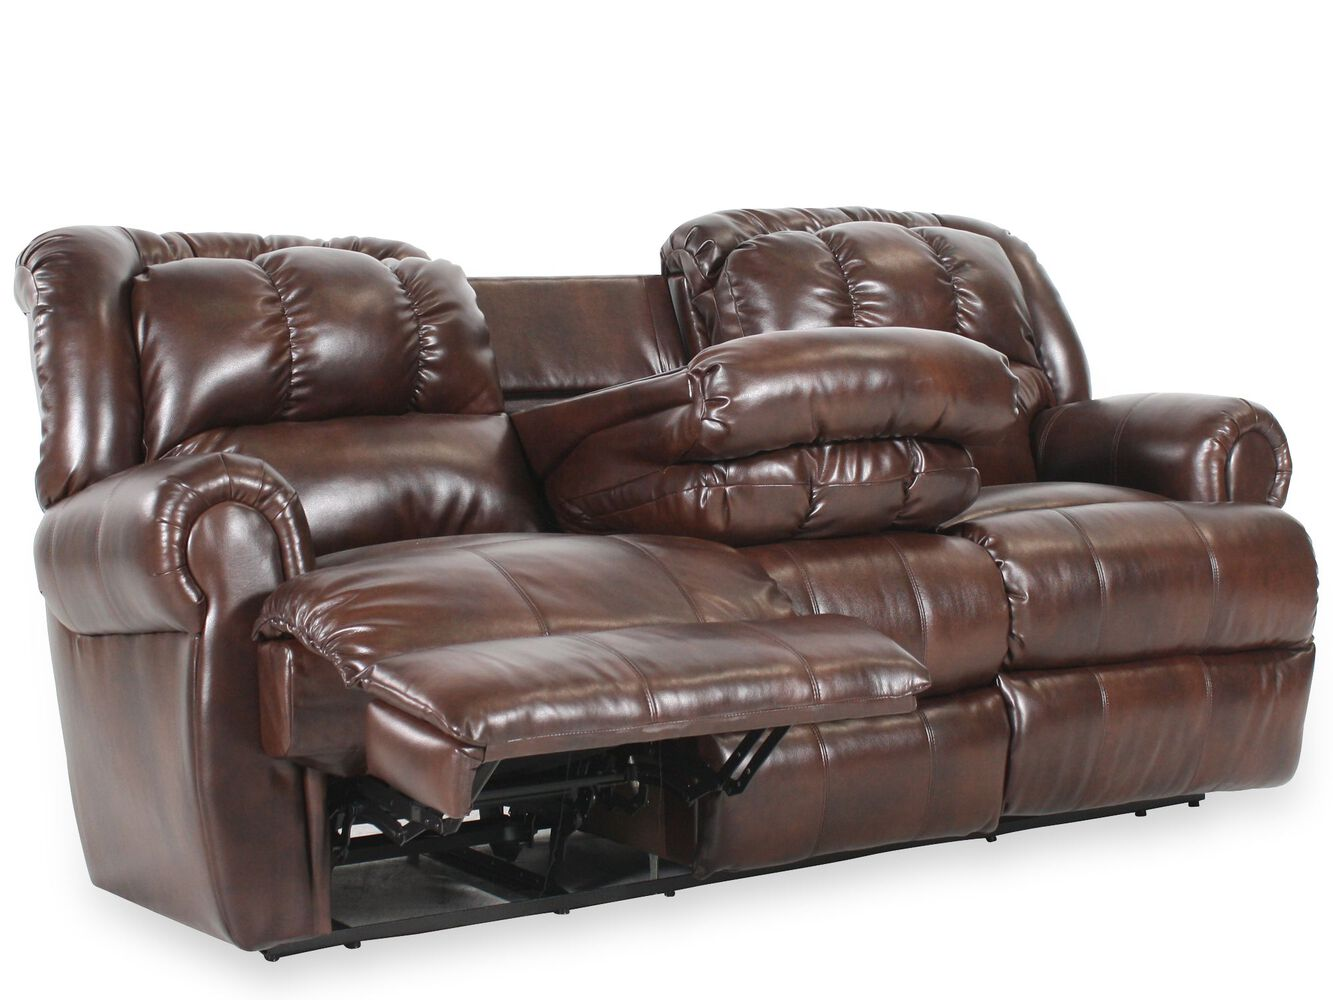 Tufted 88 reclining sofa with drop down table in brown mathis tufted 88 reclining sofa with drop down table geotapseo Choice Image